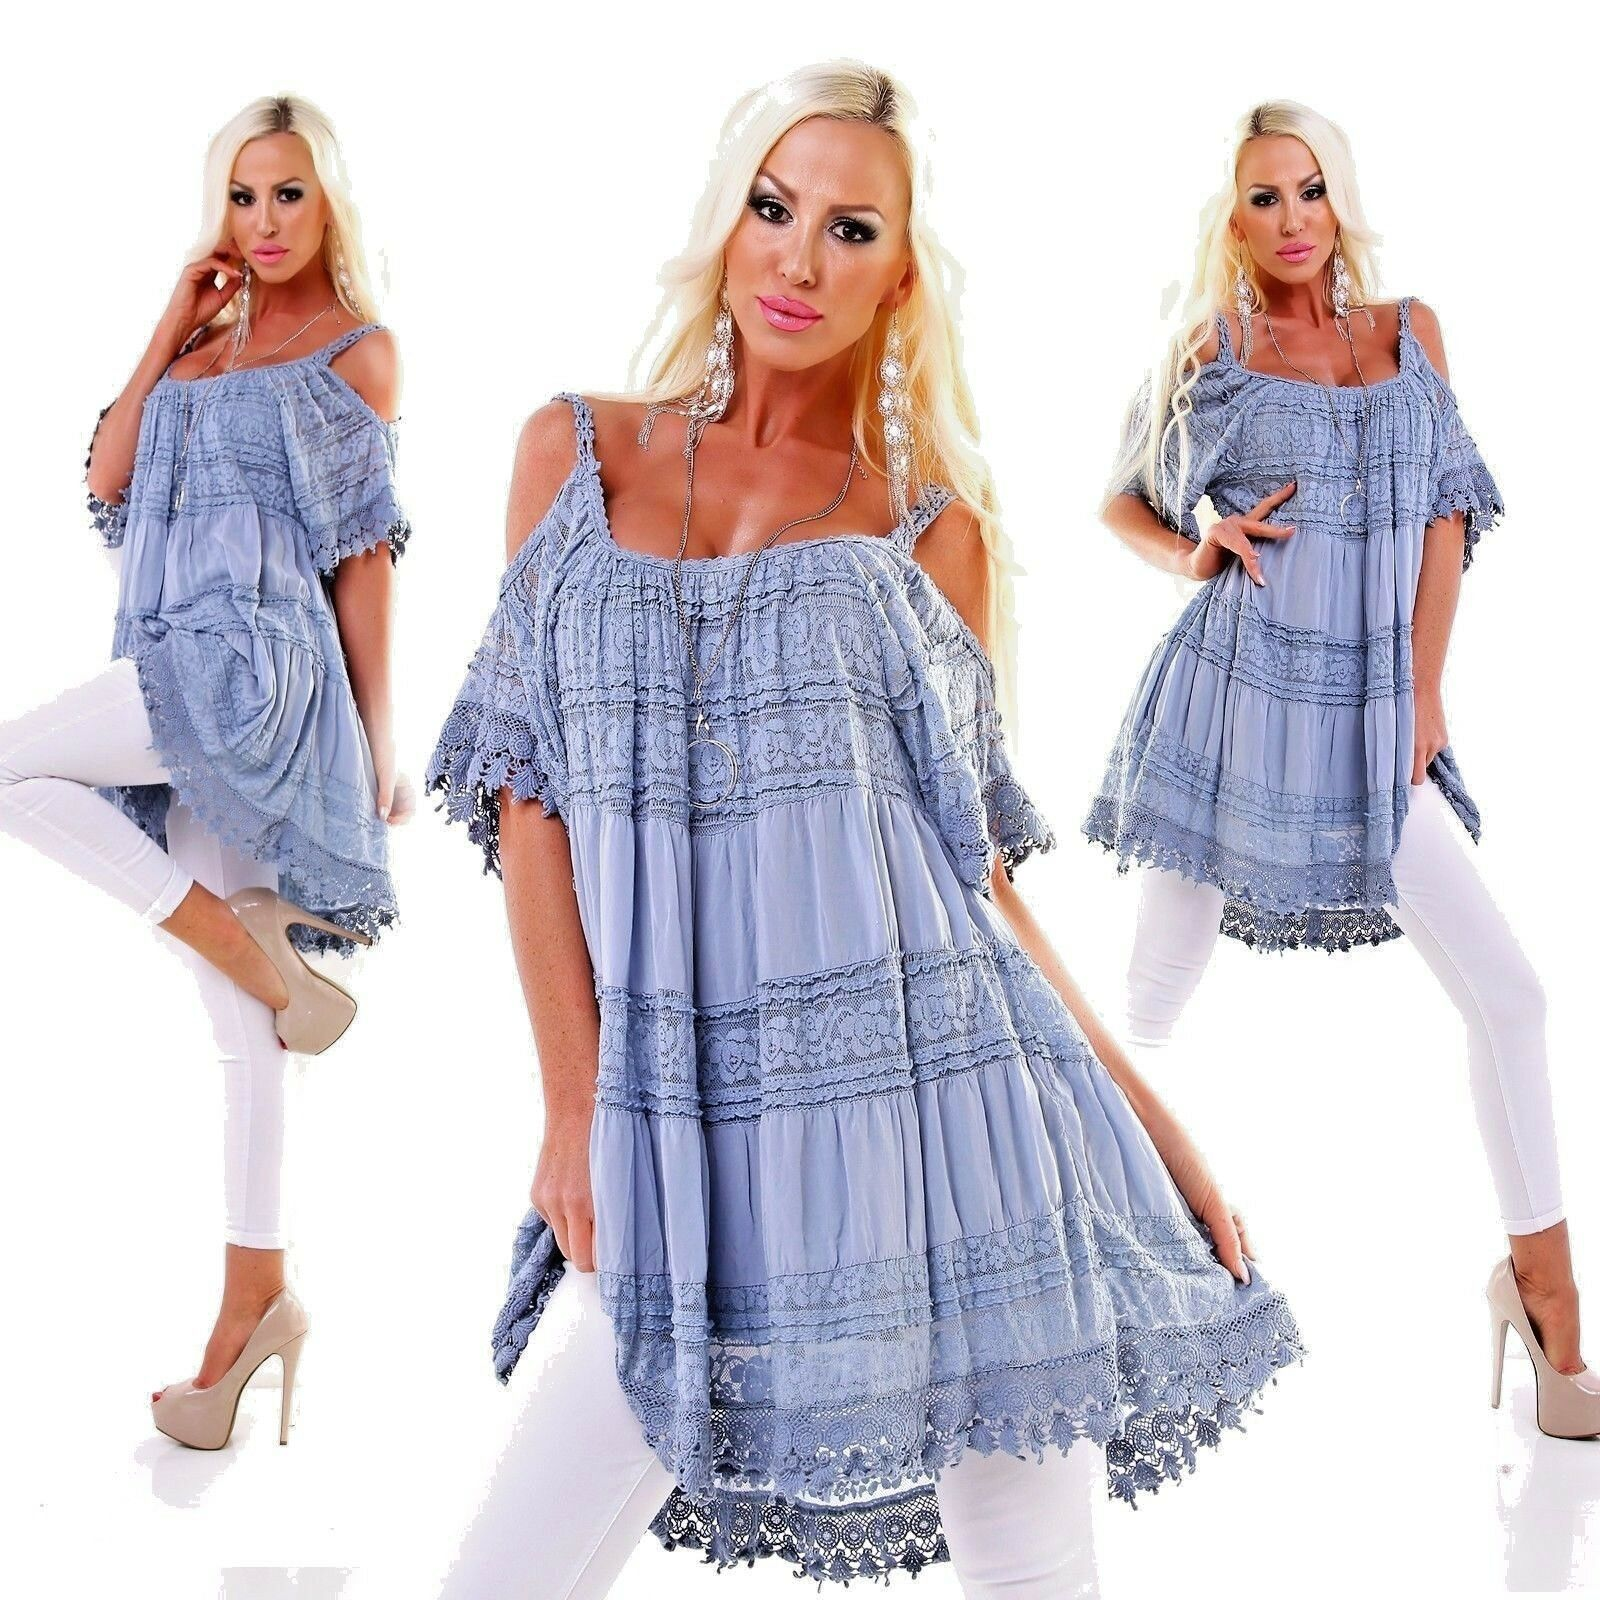 SOMMER Strand LONGBlauSE SPITZEN Tunika Blause MINI KLEID M L XL Long-Shirt Blau